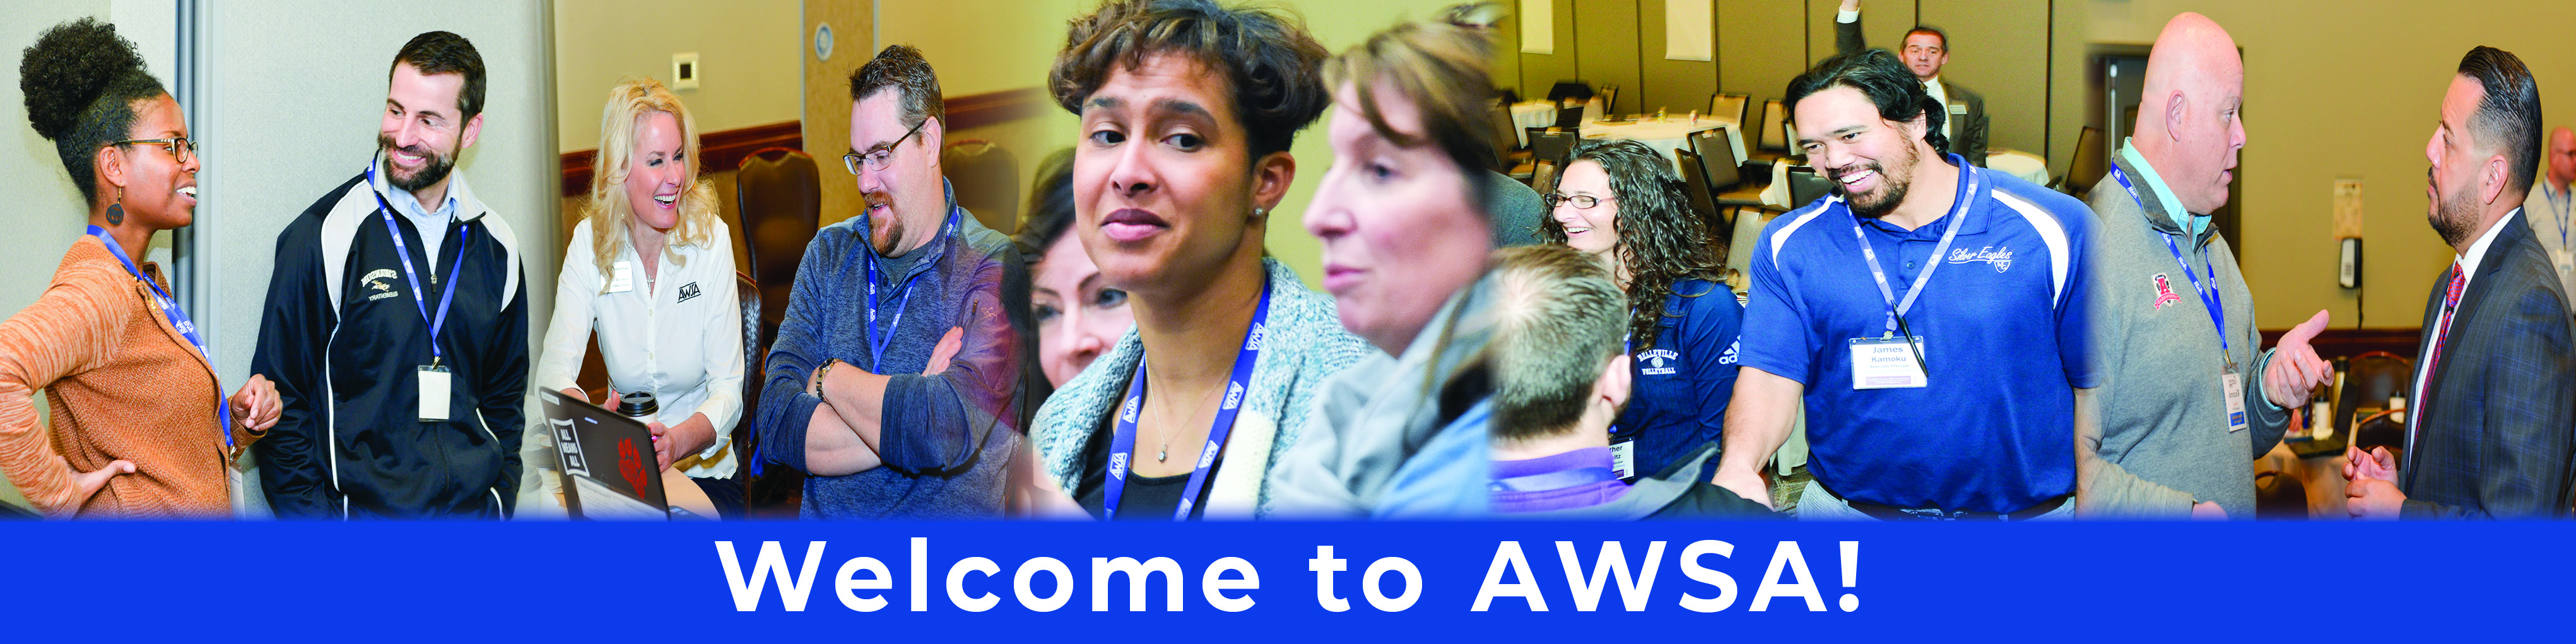 Welcome to AWSA